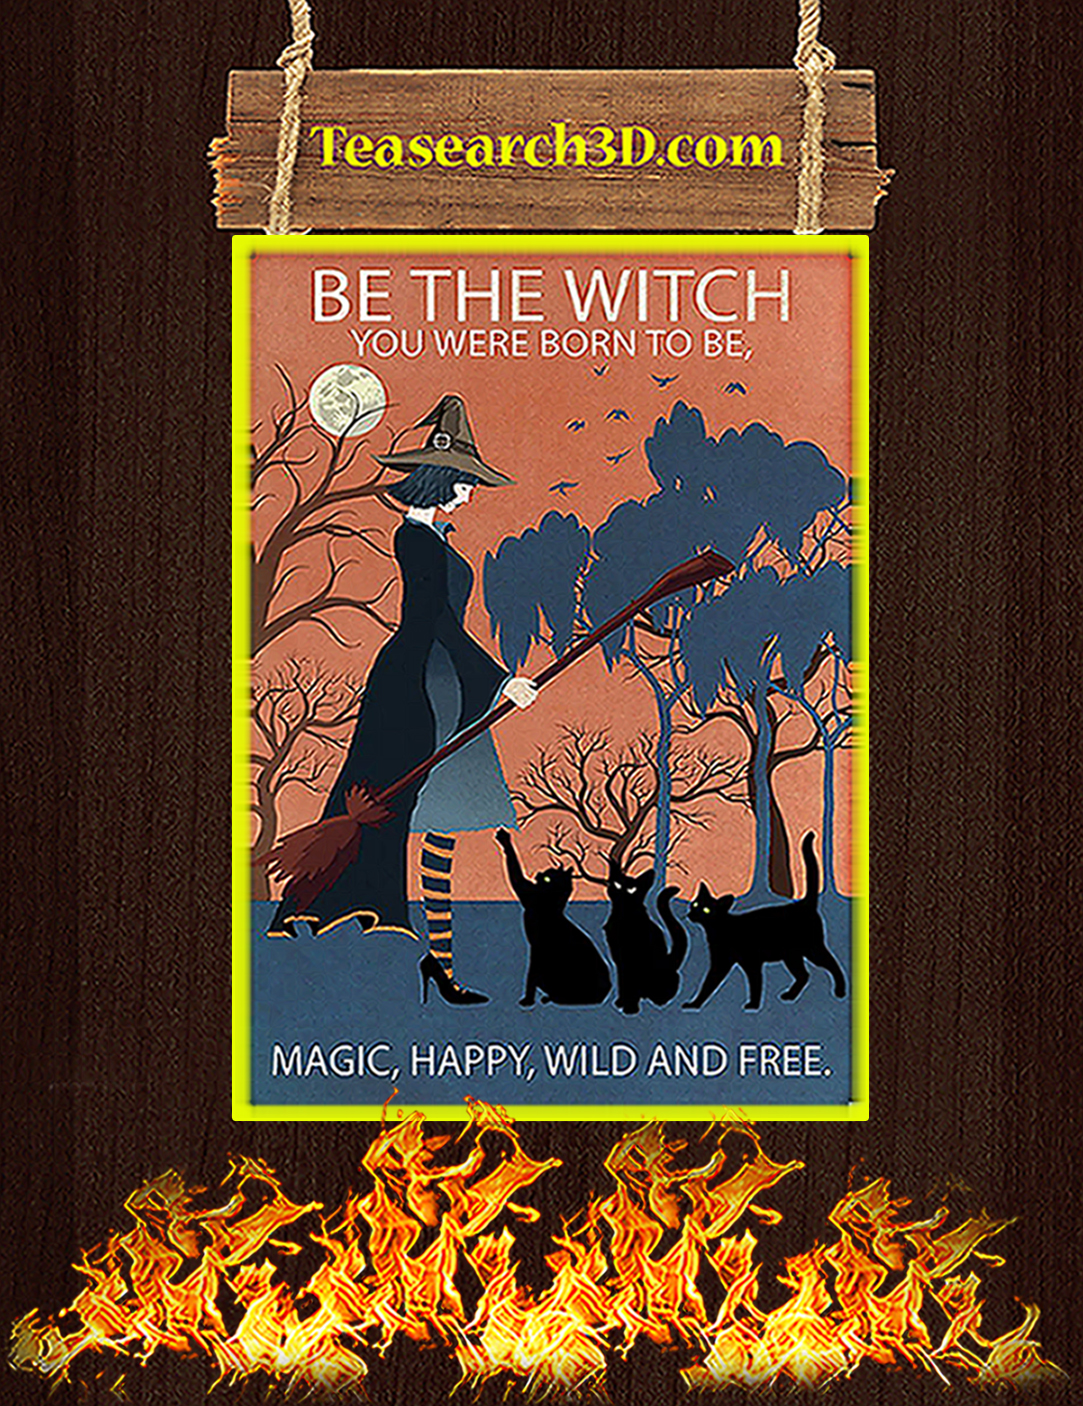 Be the witch you were born to be magic happy wild and free poster A2